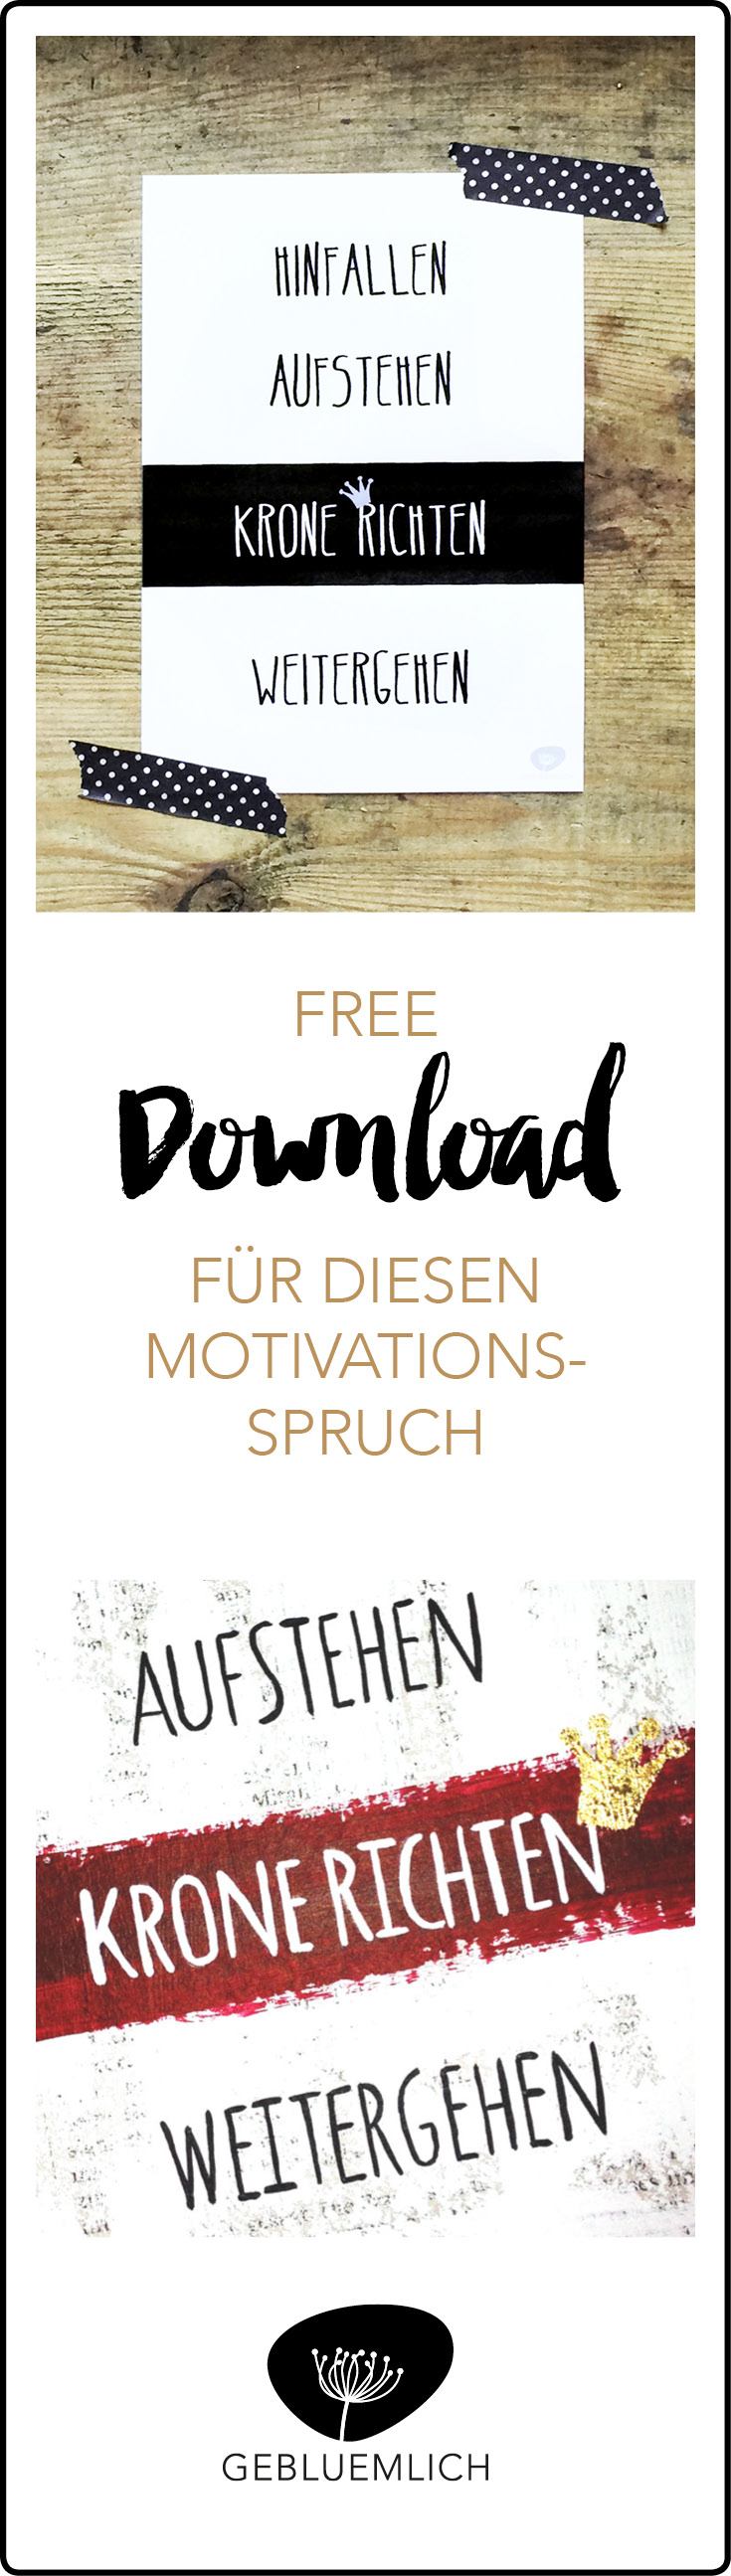 Free Download Motivationsspruch